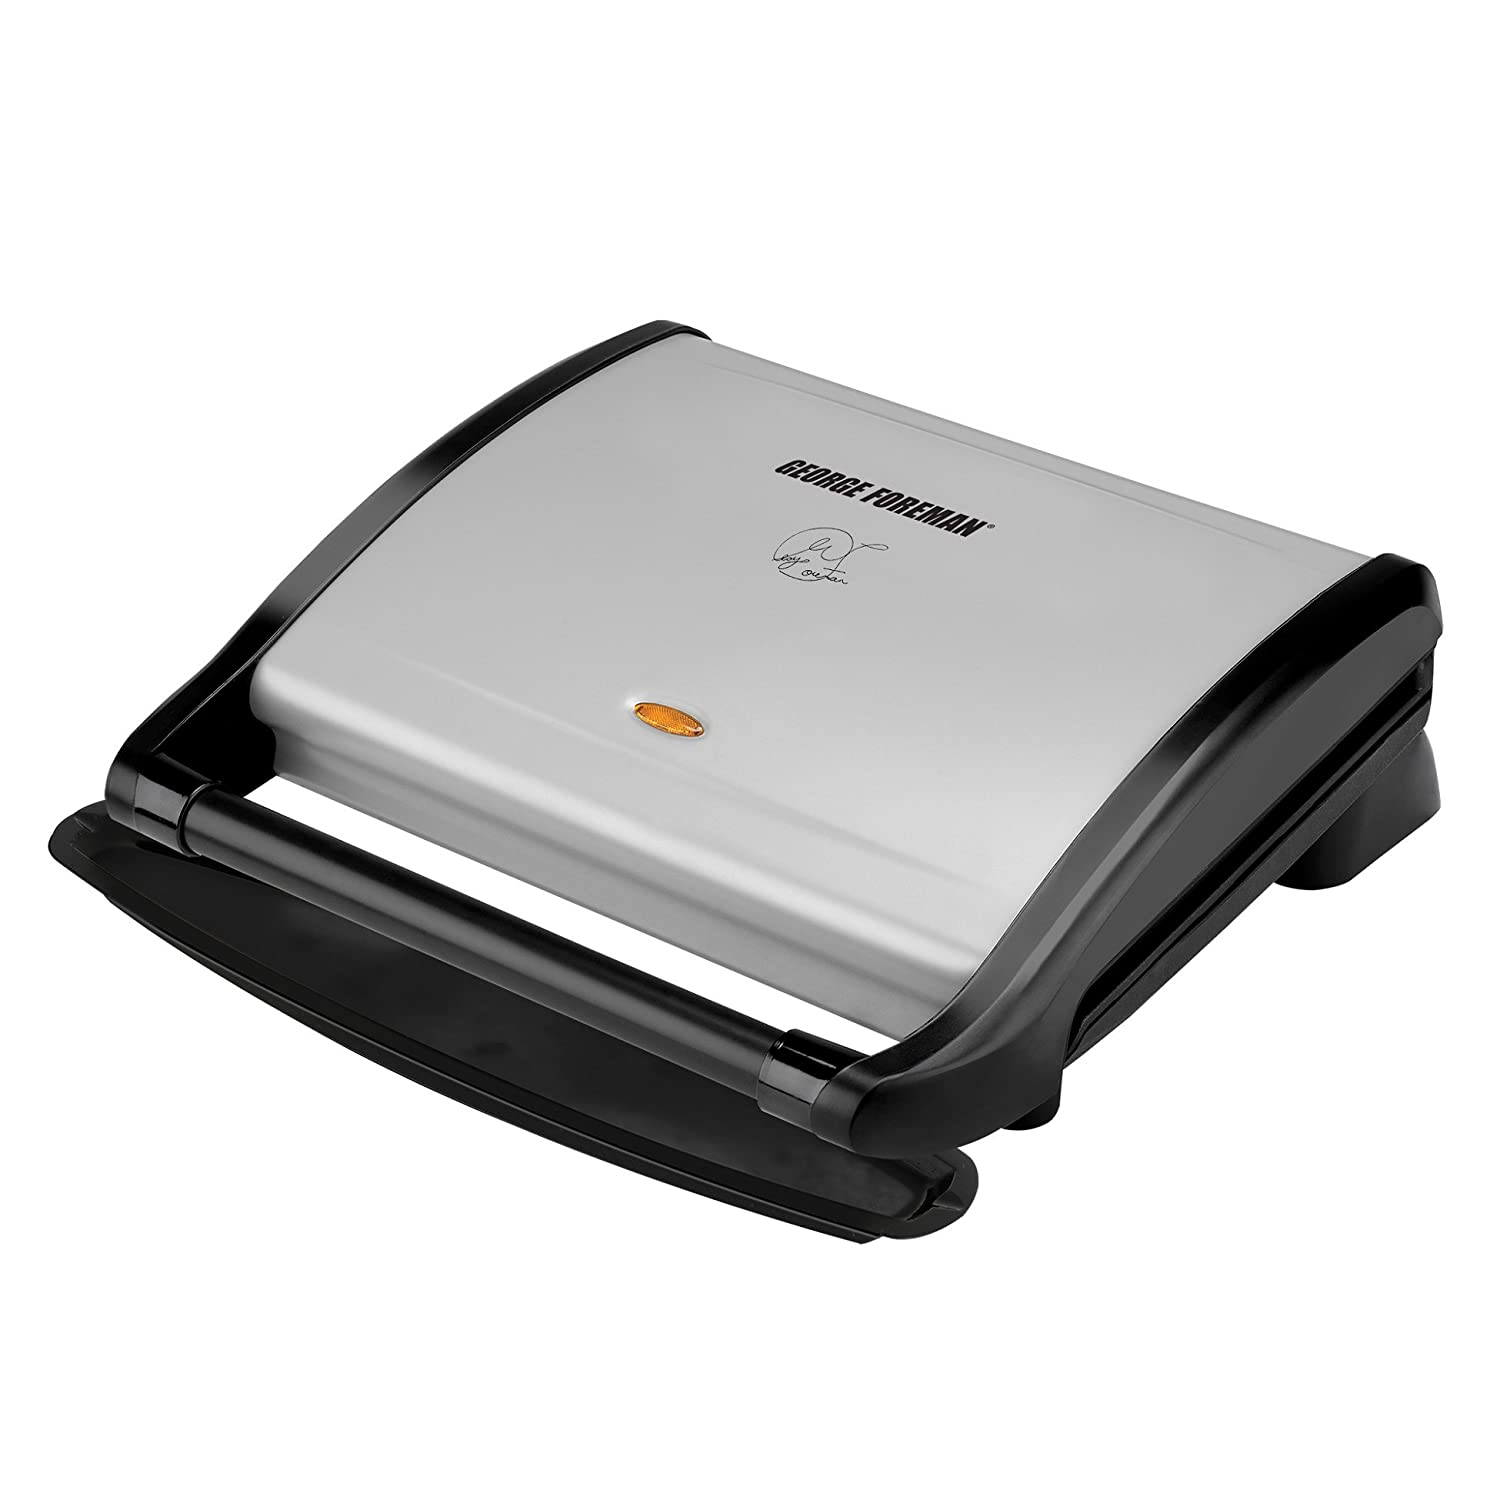 George Foreman GRV80 Contemporary Grill with Extended Handle